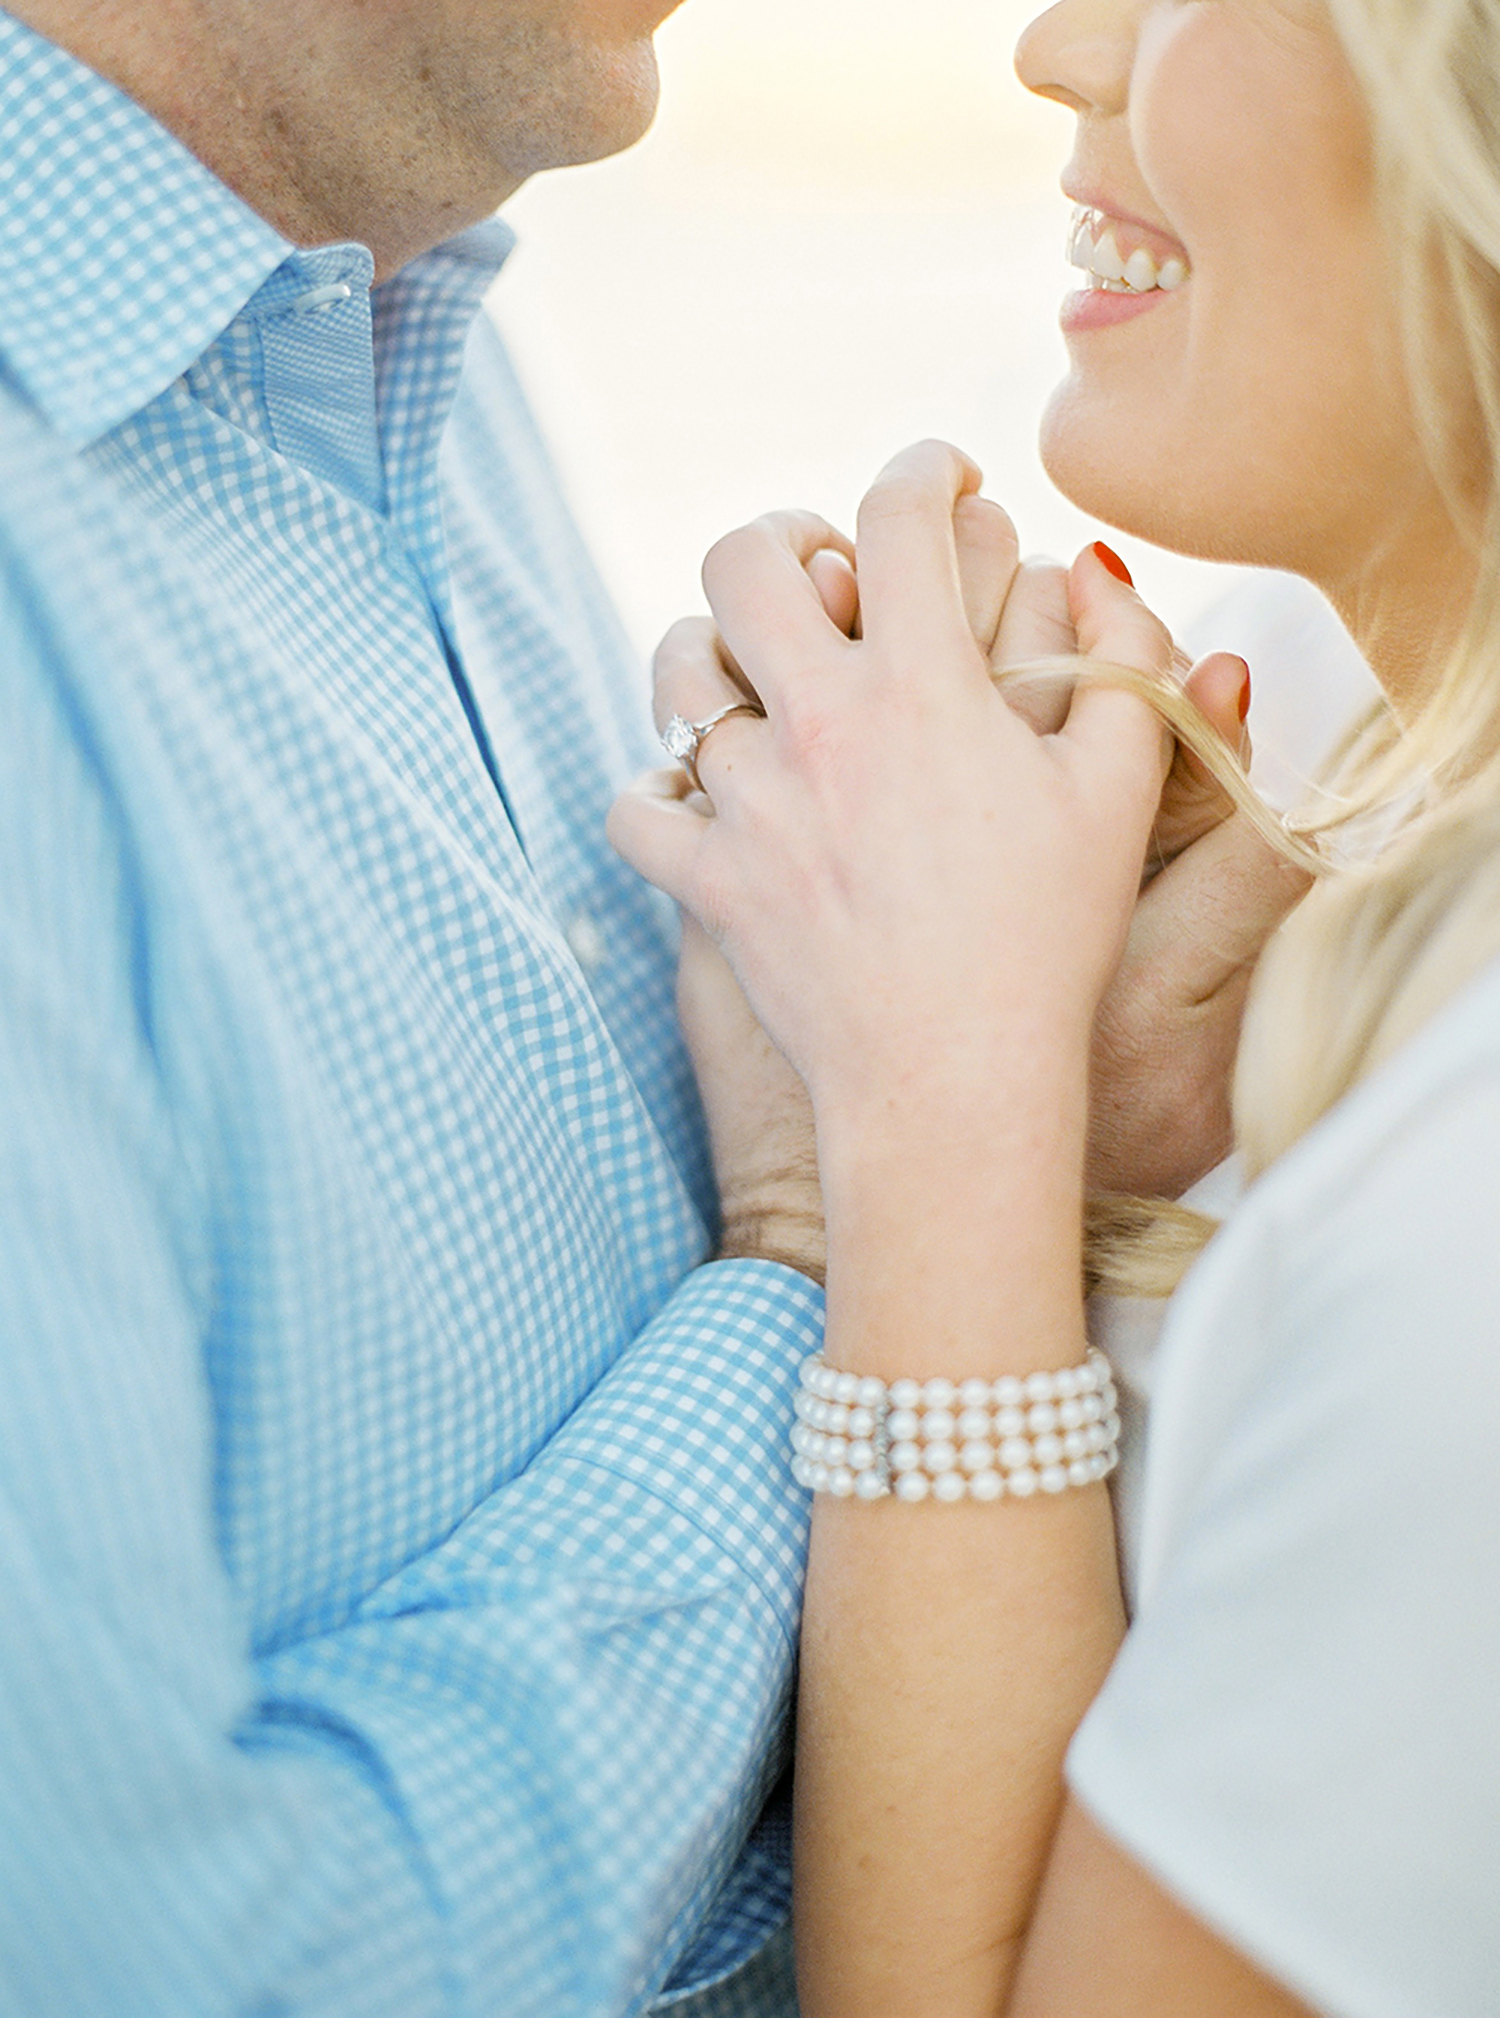 All smiles for this romantic engagement session in Lisbon